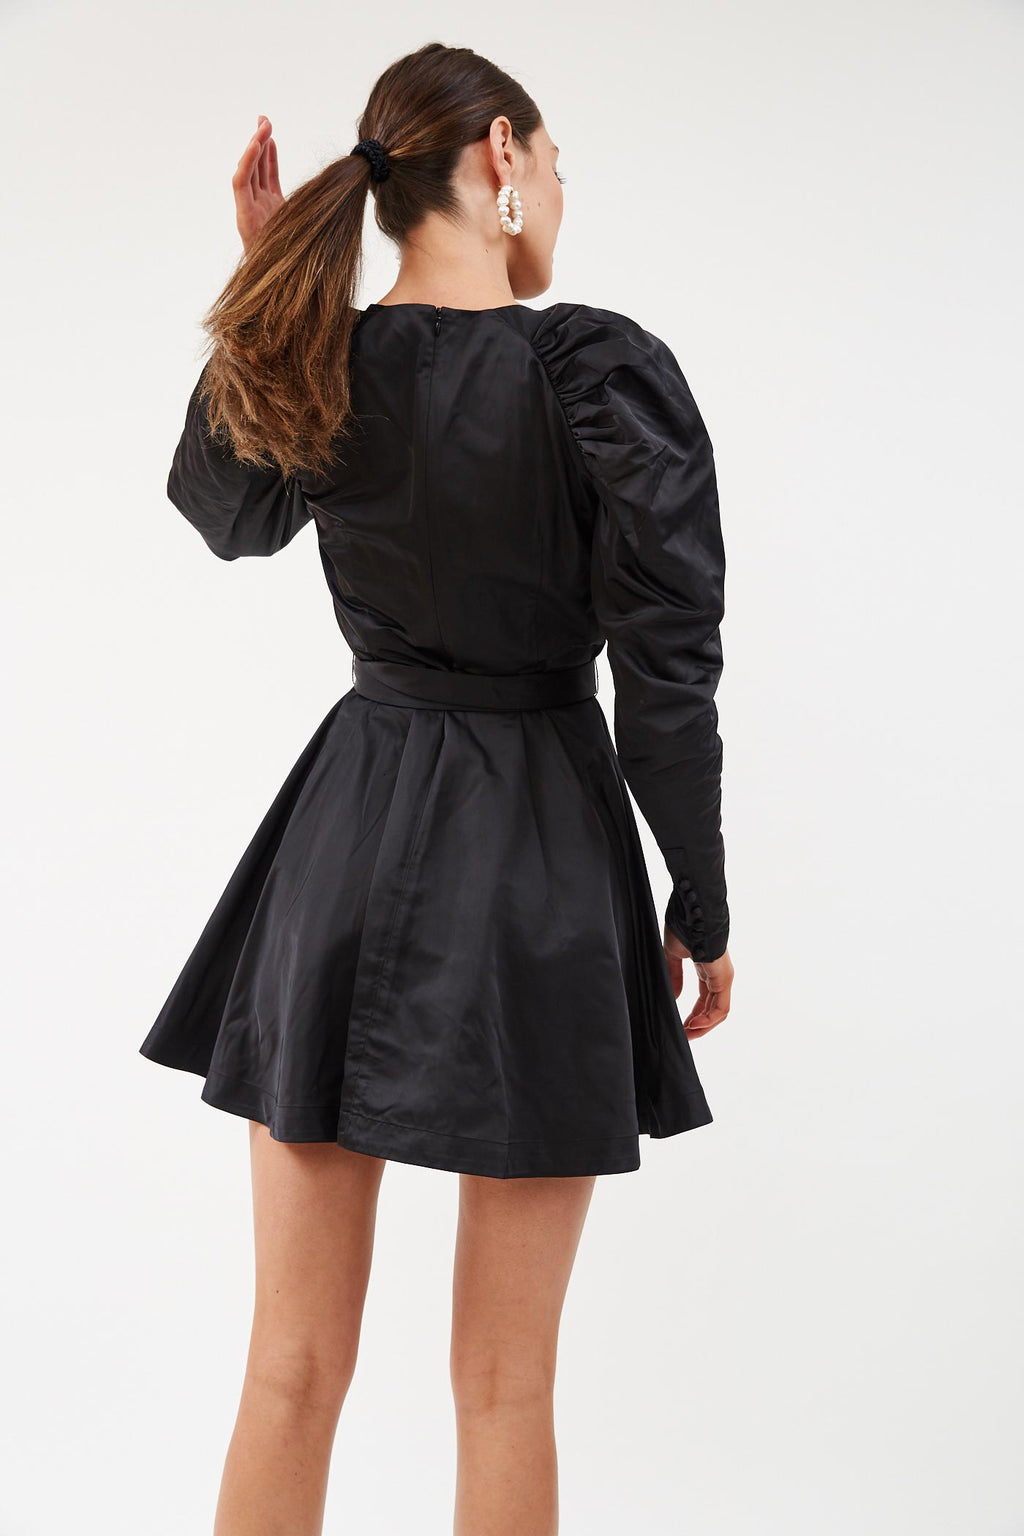 Belted Black Mini